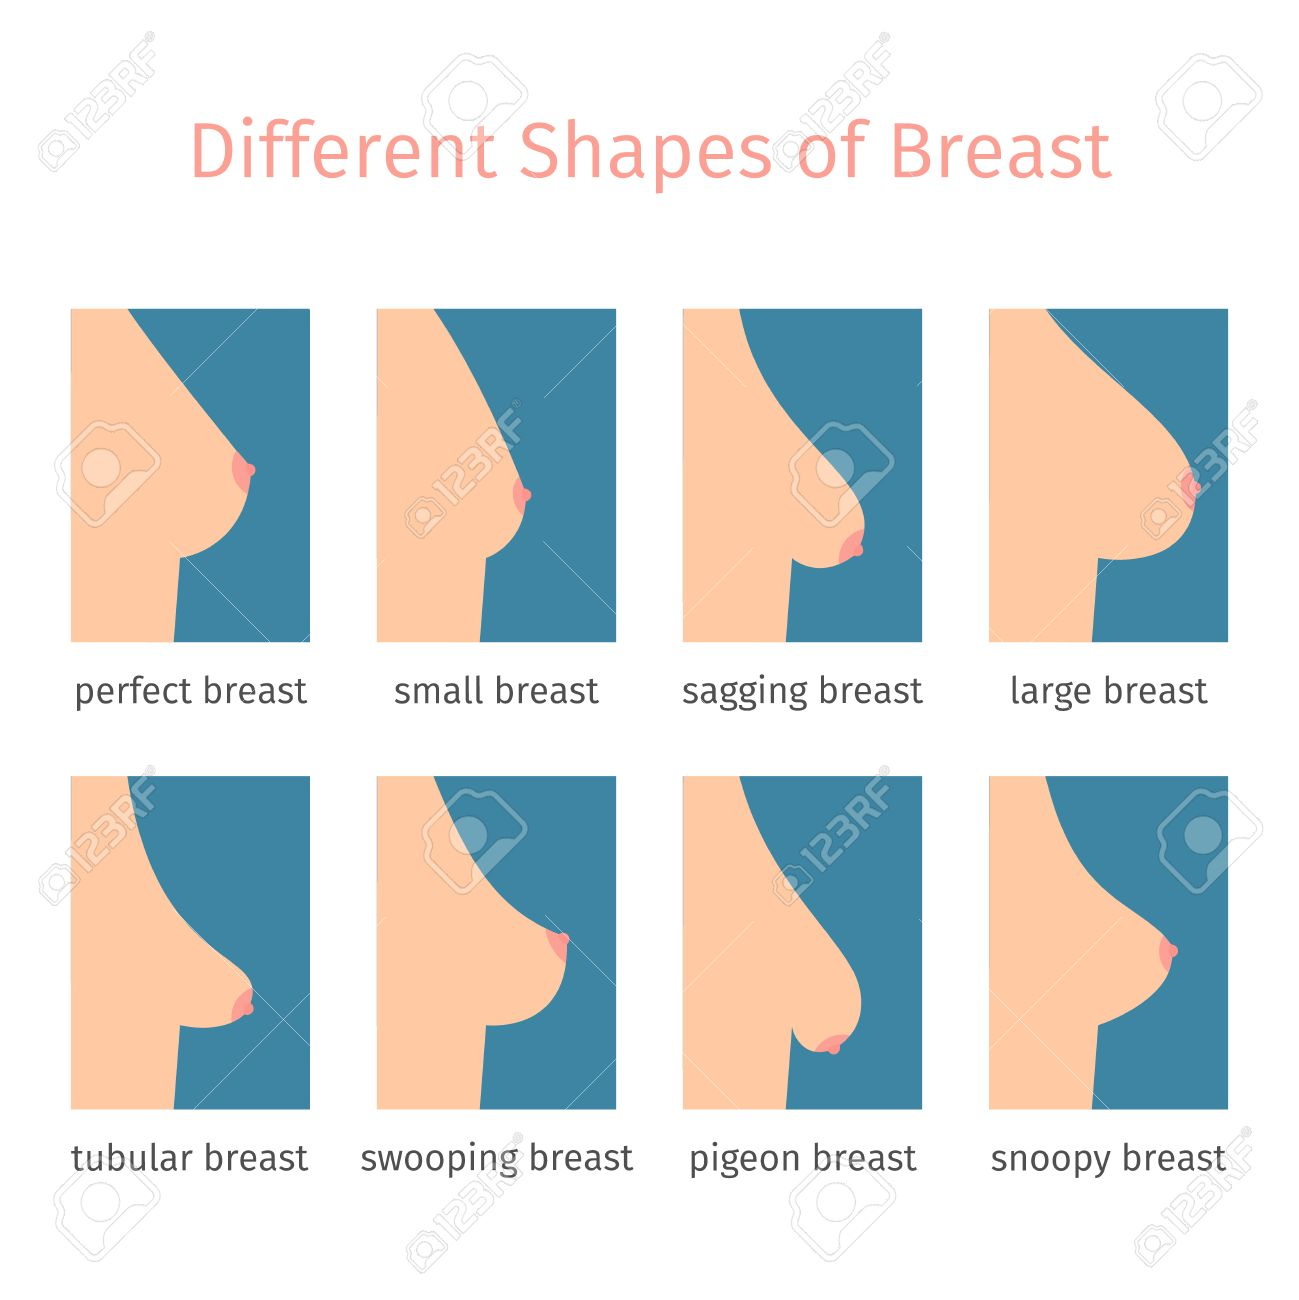 Breast shapes icons in flat style. illustration - 56382090